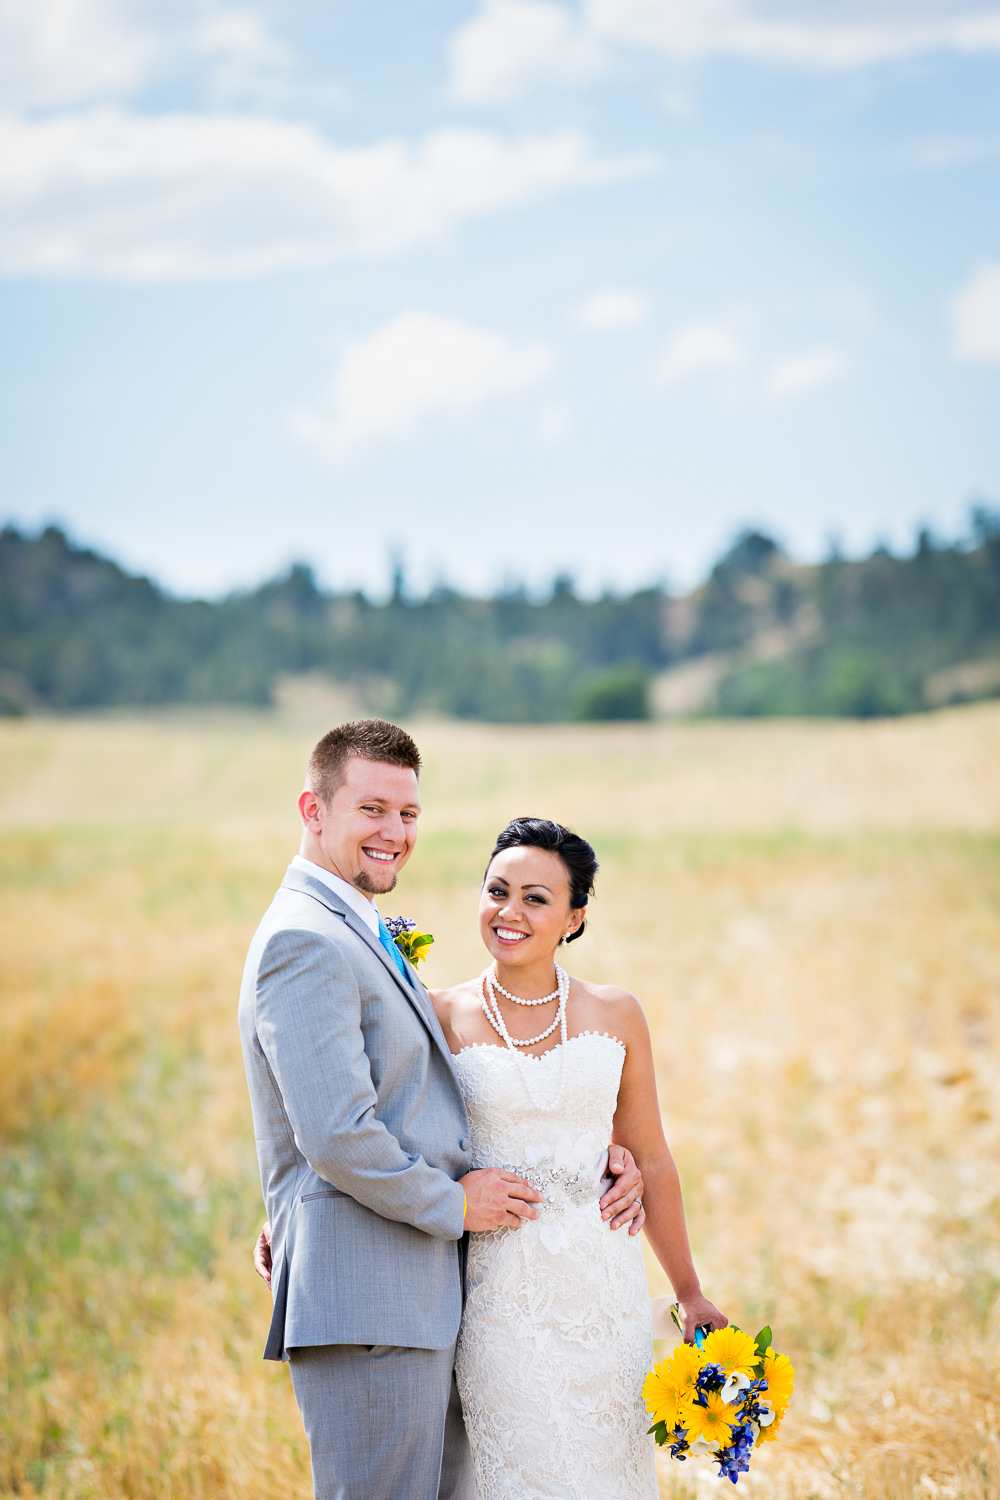 billings-montana-chanceys-wedding-first-look-bride-groom-traditional-pose.jpg